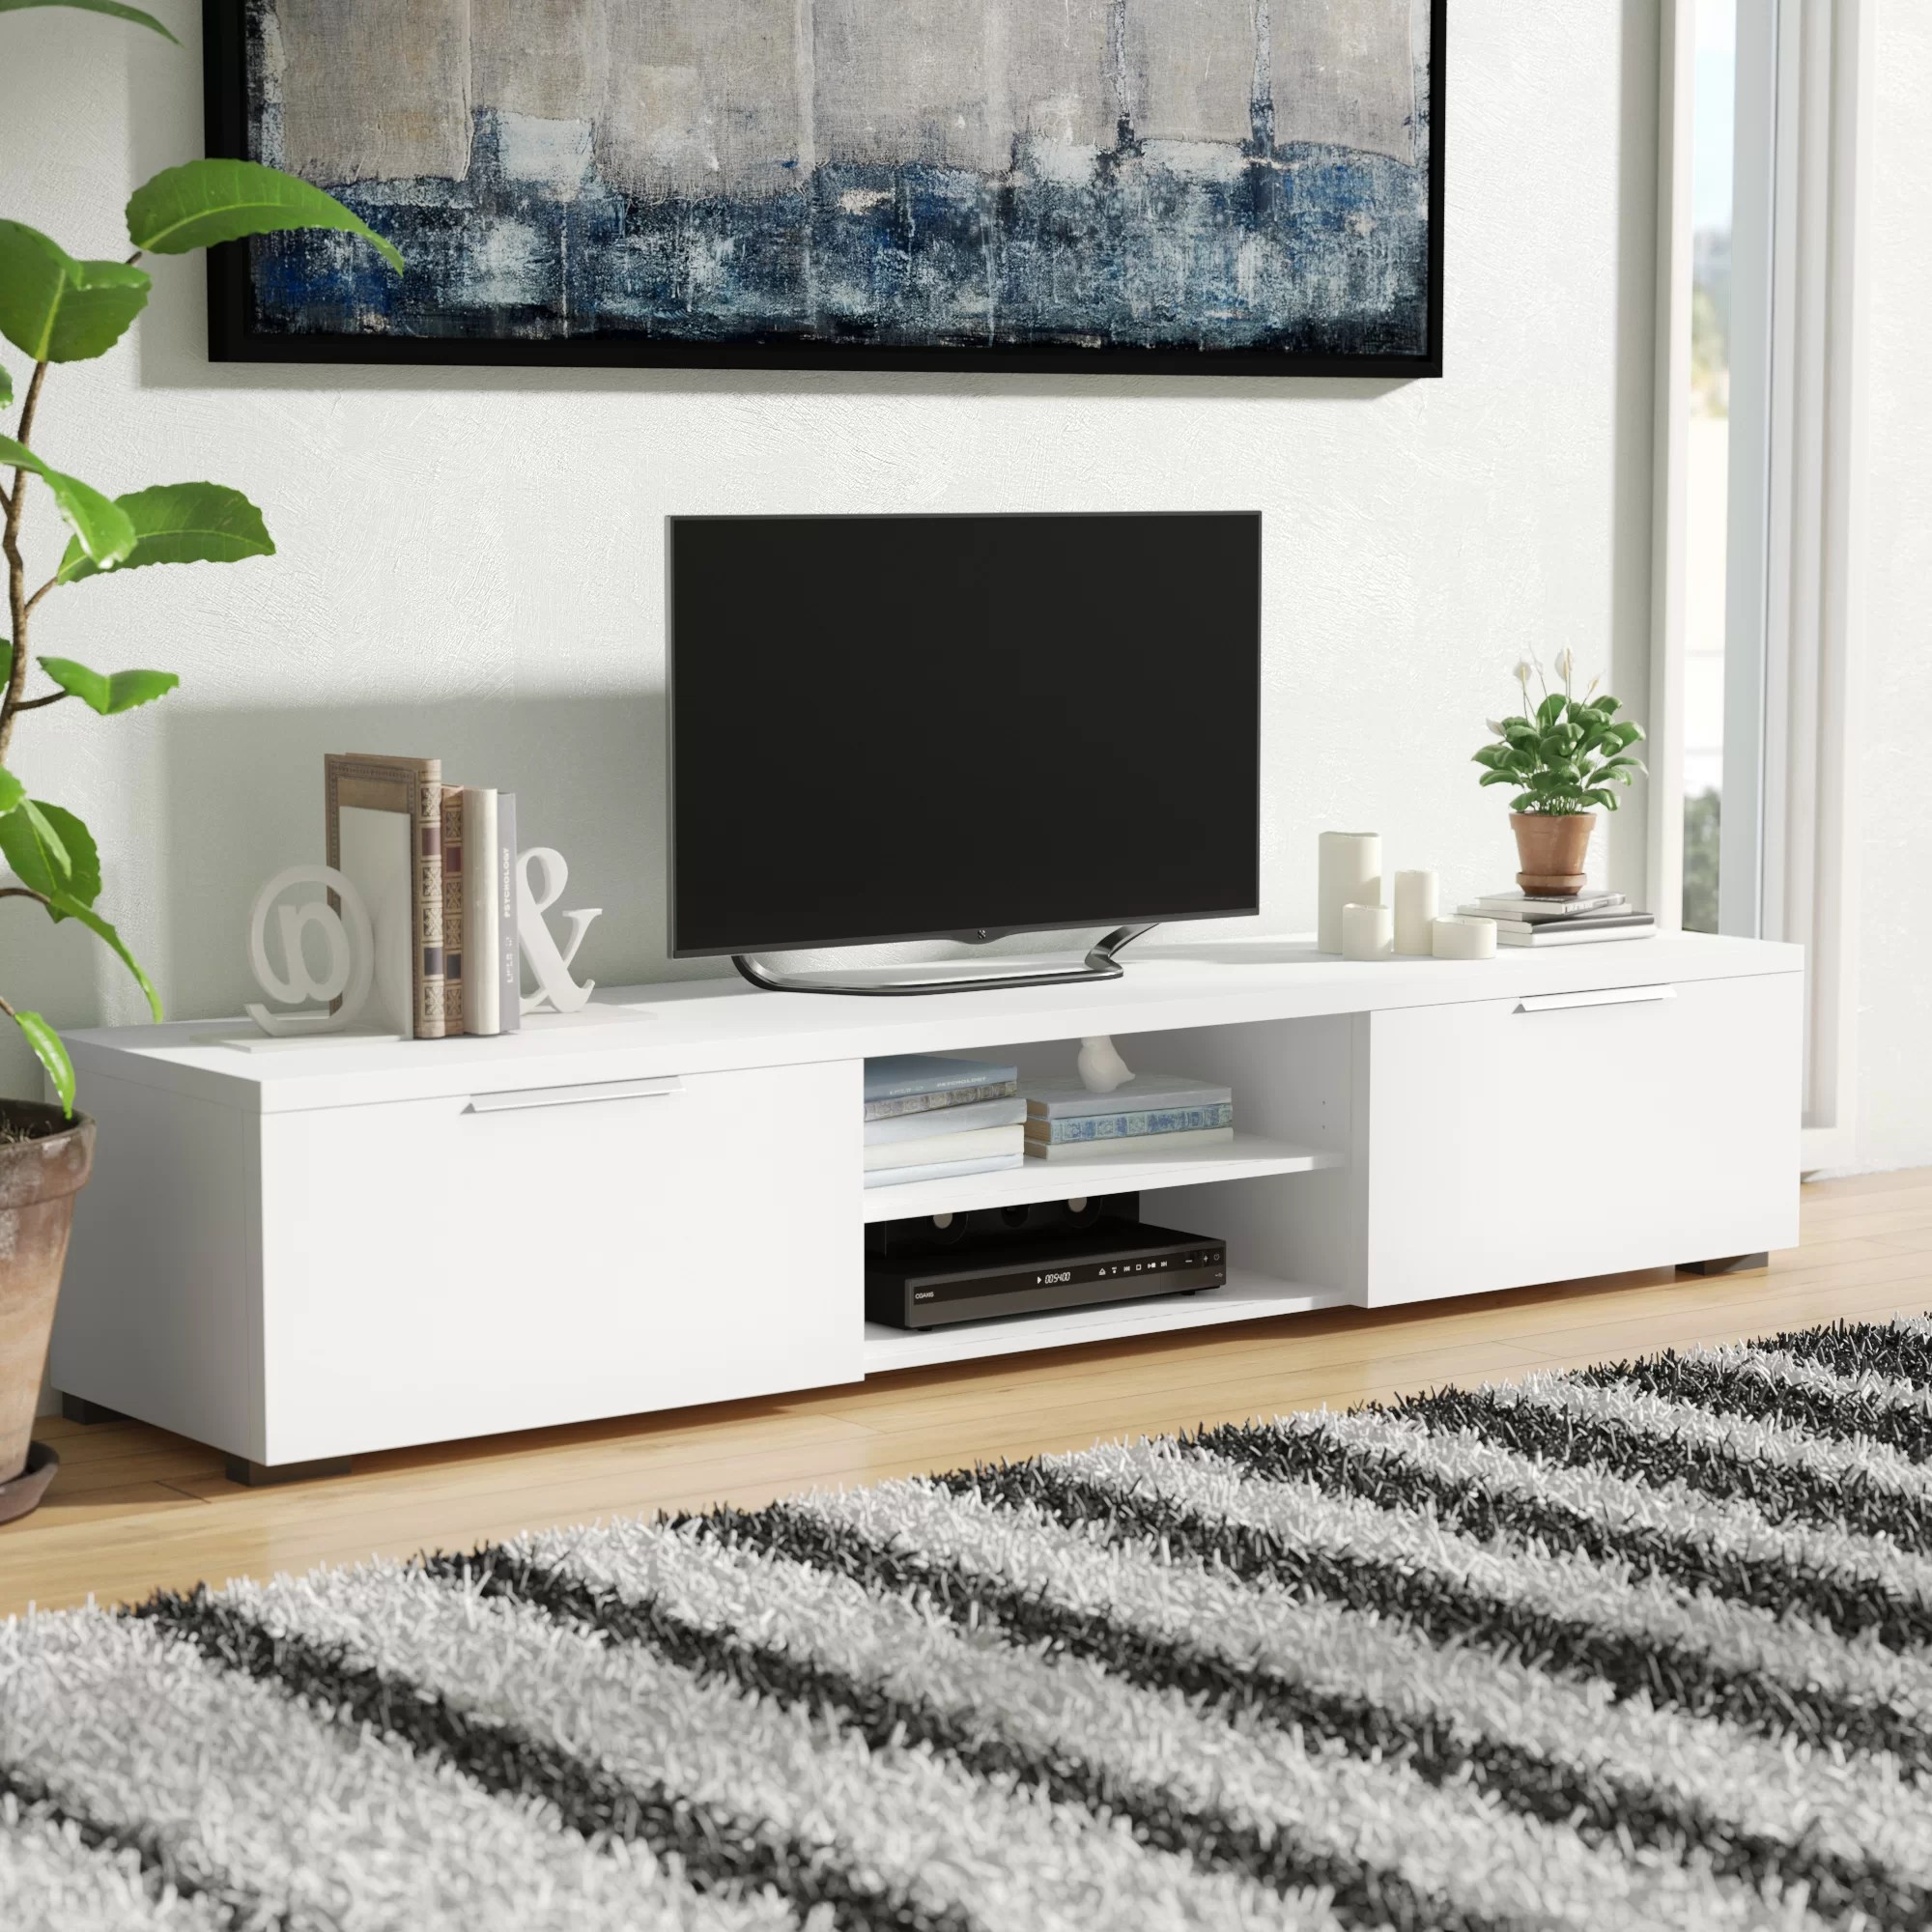 Design Tv Rack Cool Tv Rack With Tv Rack With Design Tv Rack Rafael Tv Stand For Tvs Up To 45